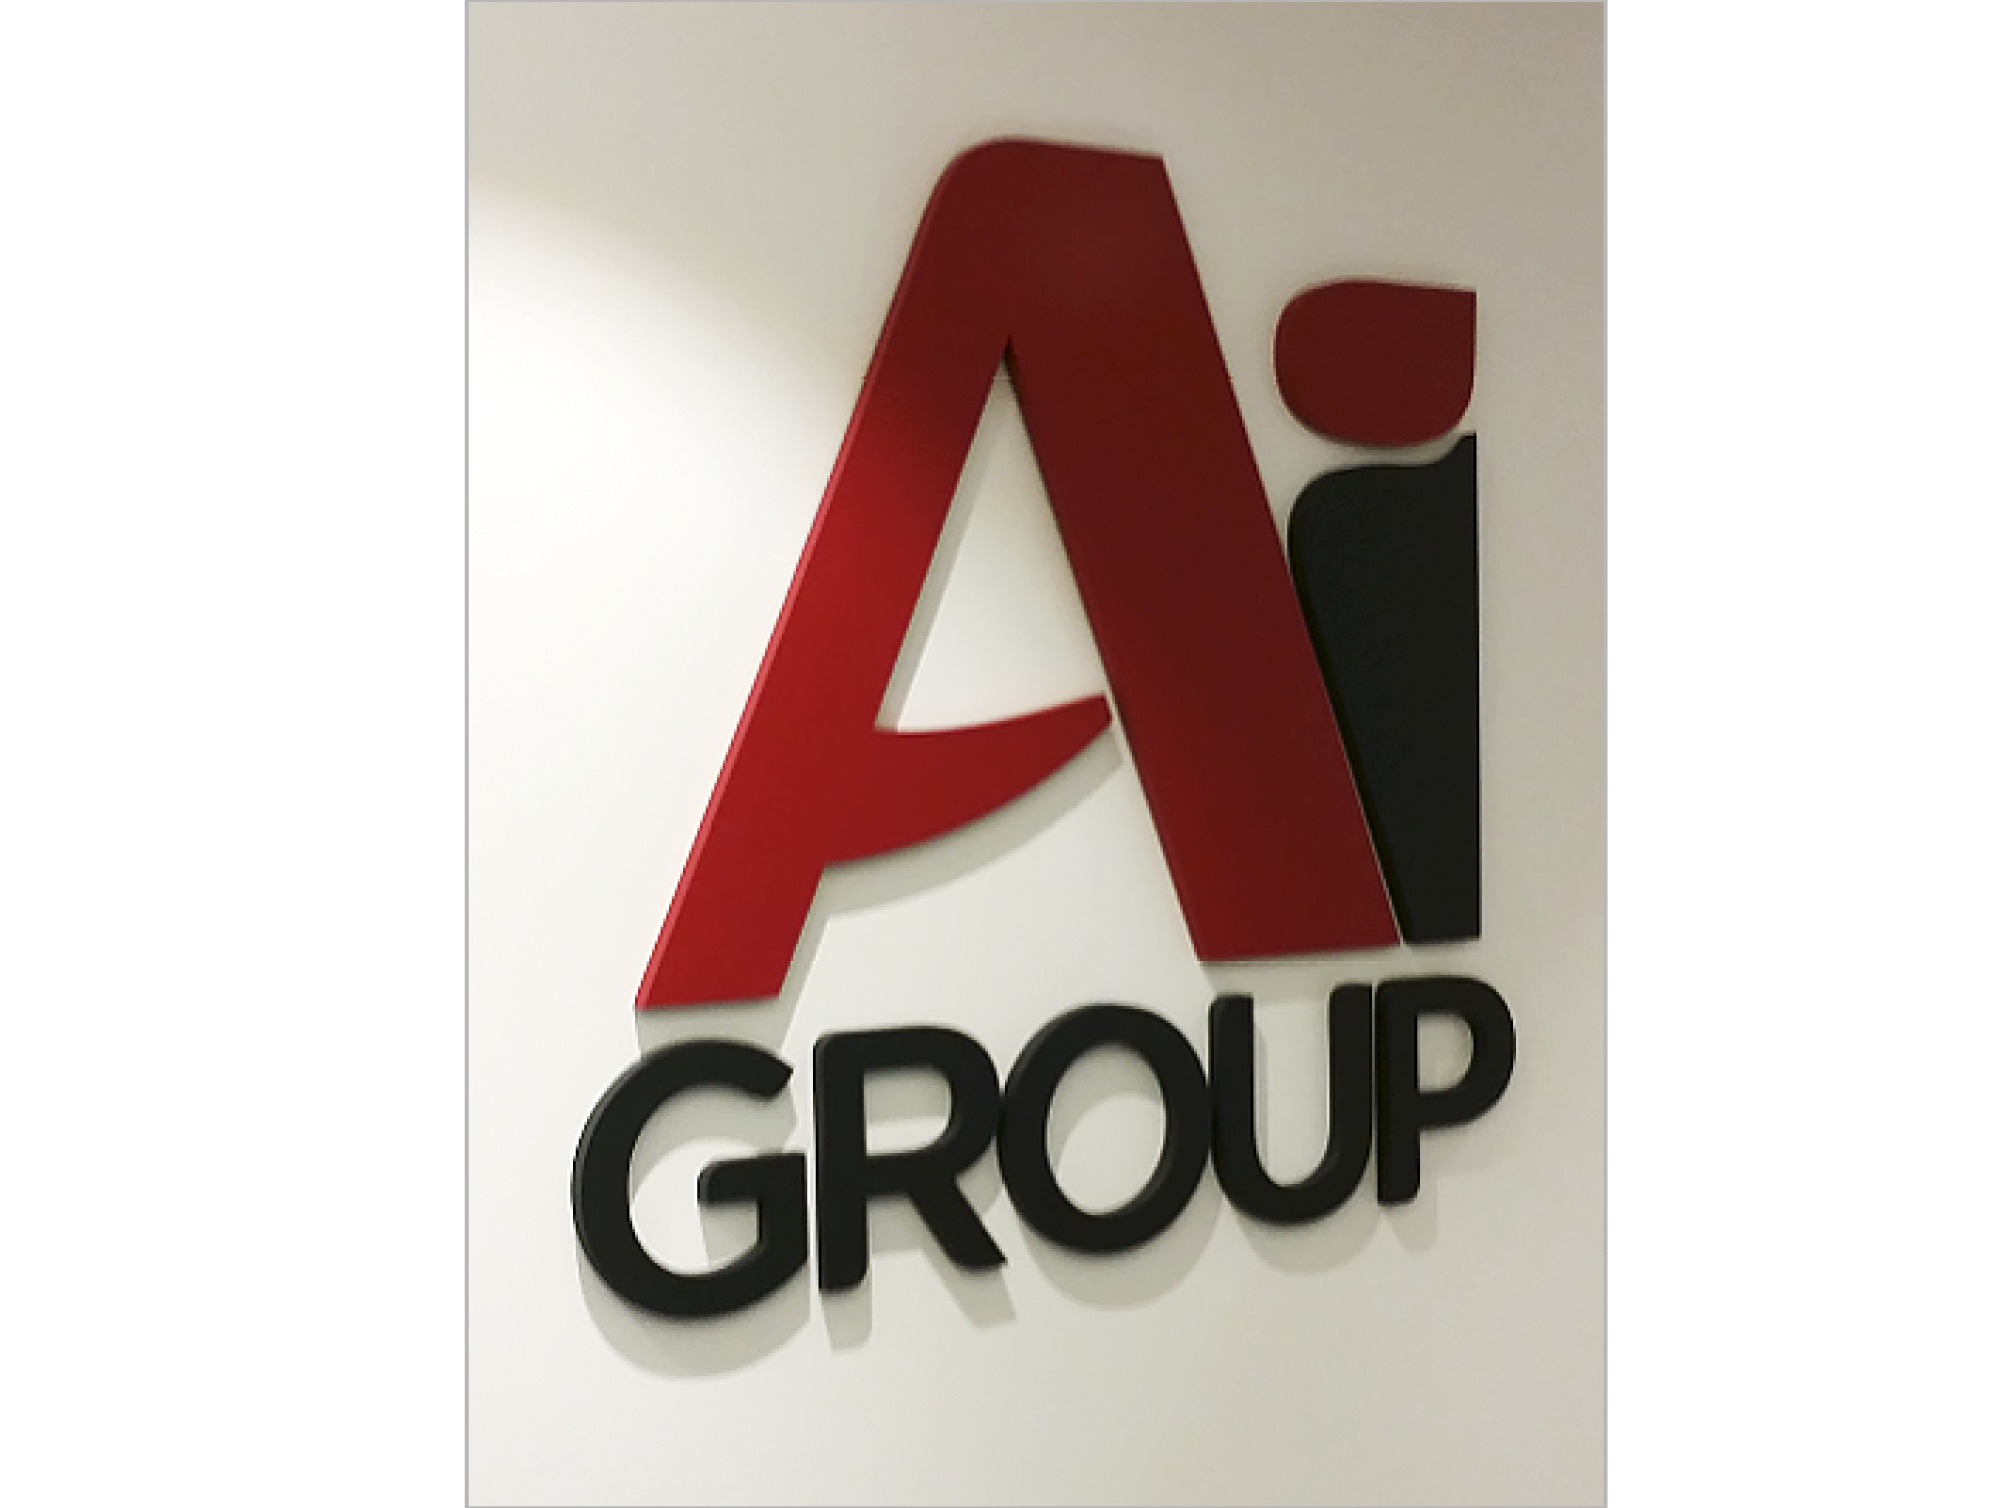 ai-group-fabricated-lettering-on-wall